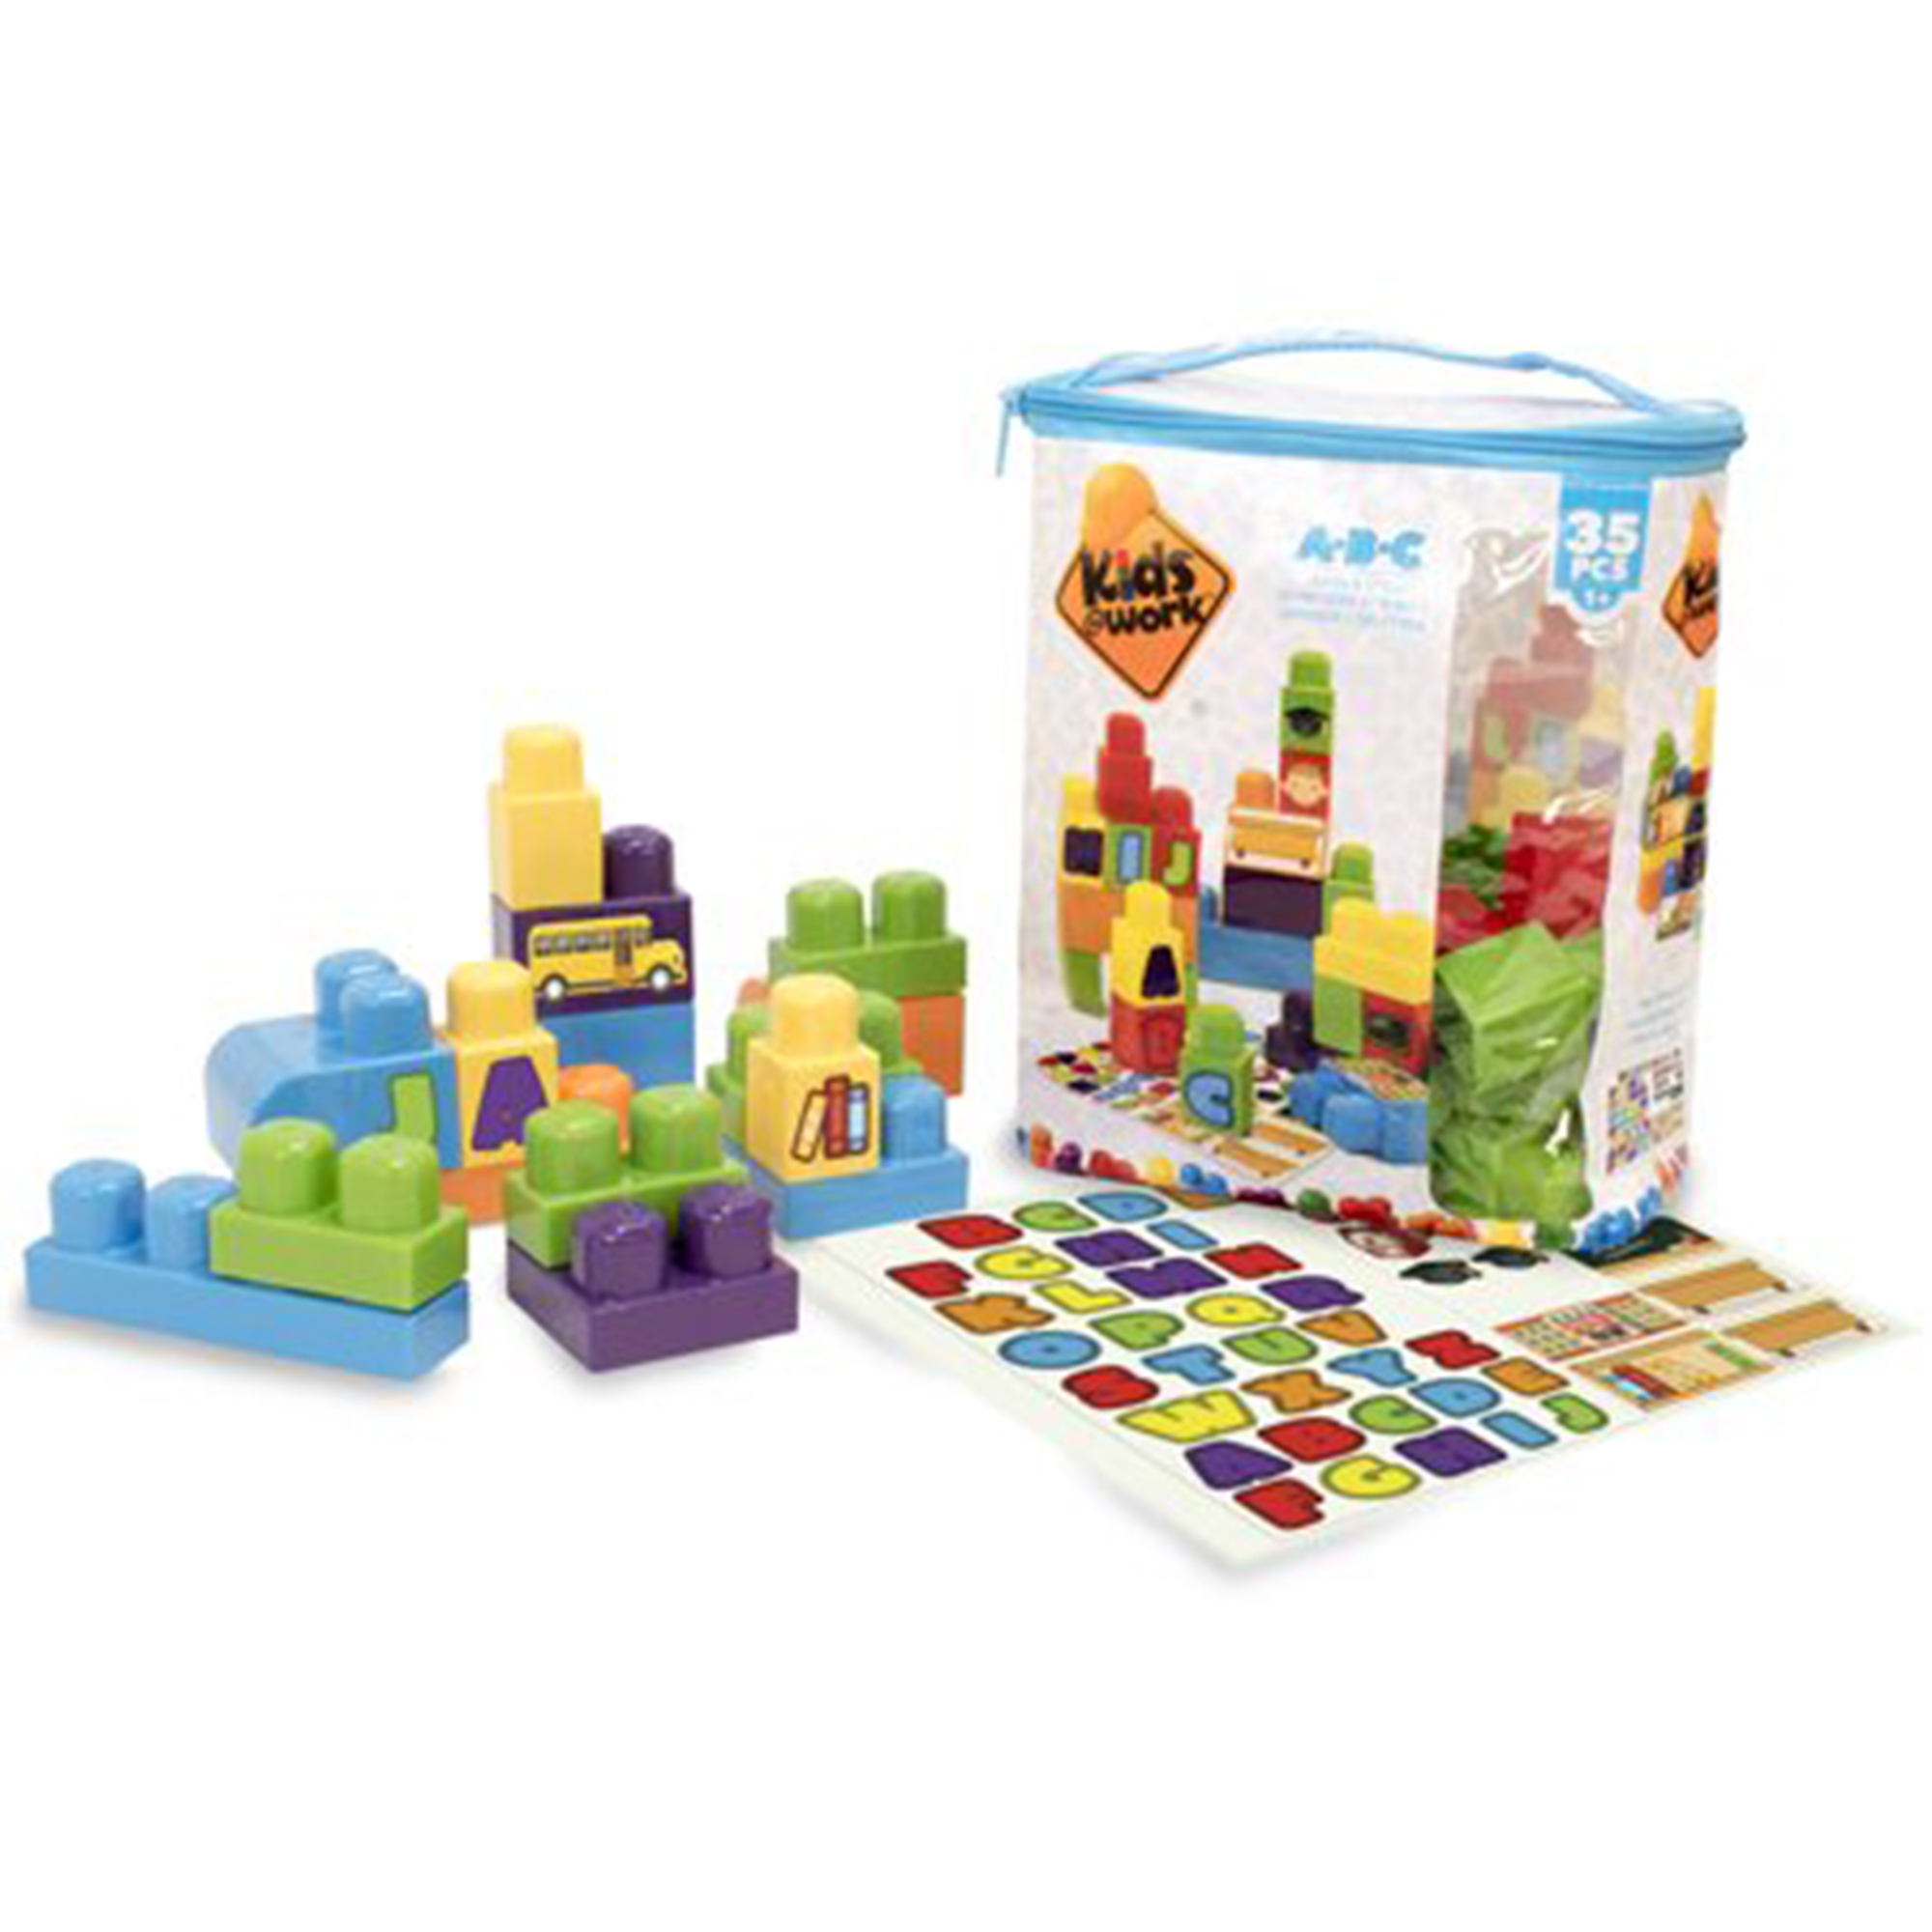 Amloid Corporation - Kids@Work 35 Piece 123 Tote